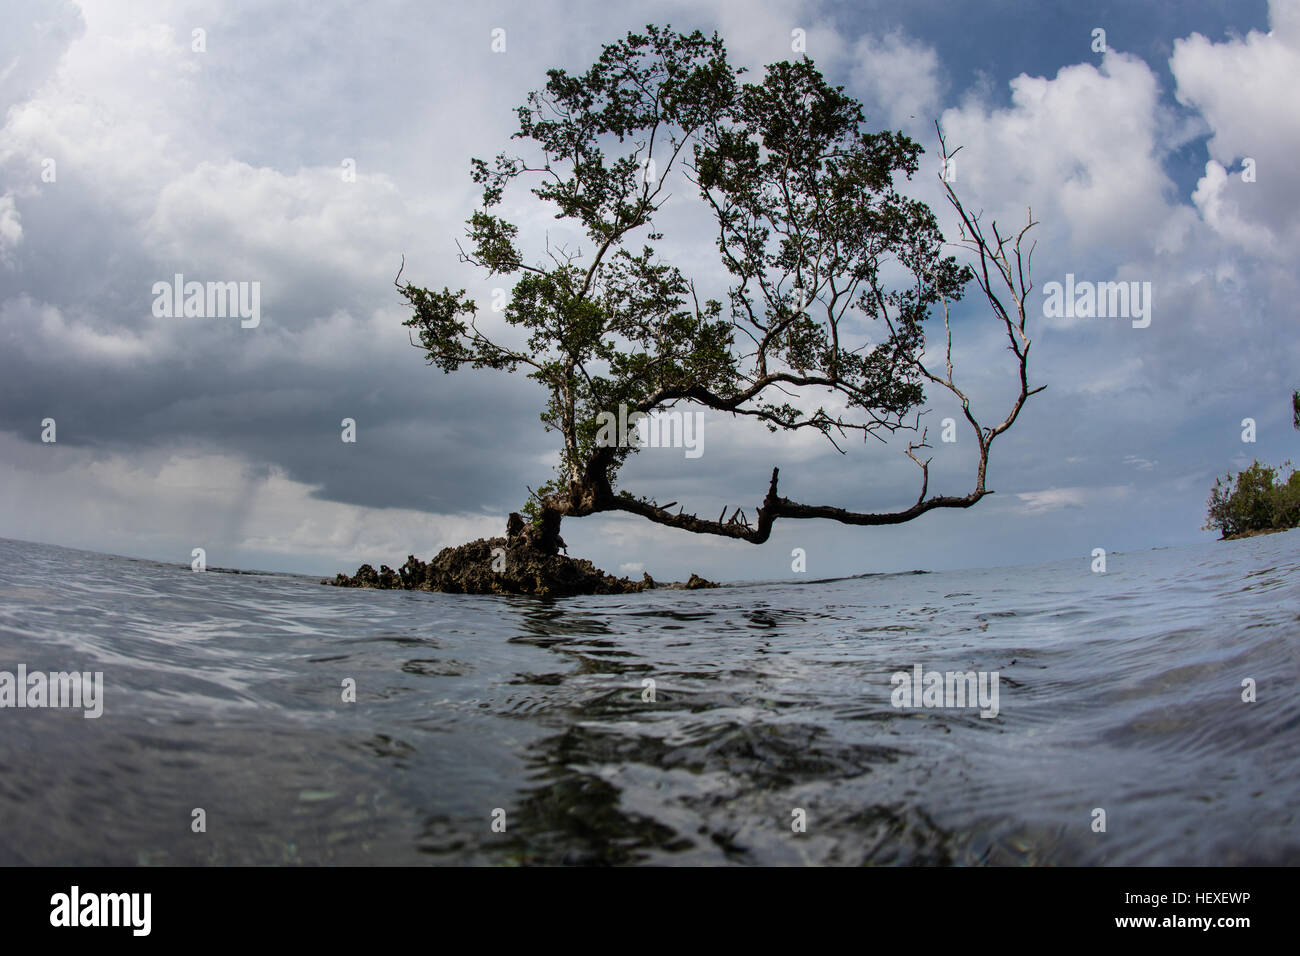 A small tree has grown on a limestone outcrop in Marovo Lagoon, the Solomon Islands. - Stock Image